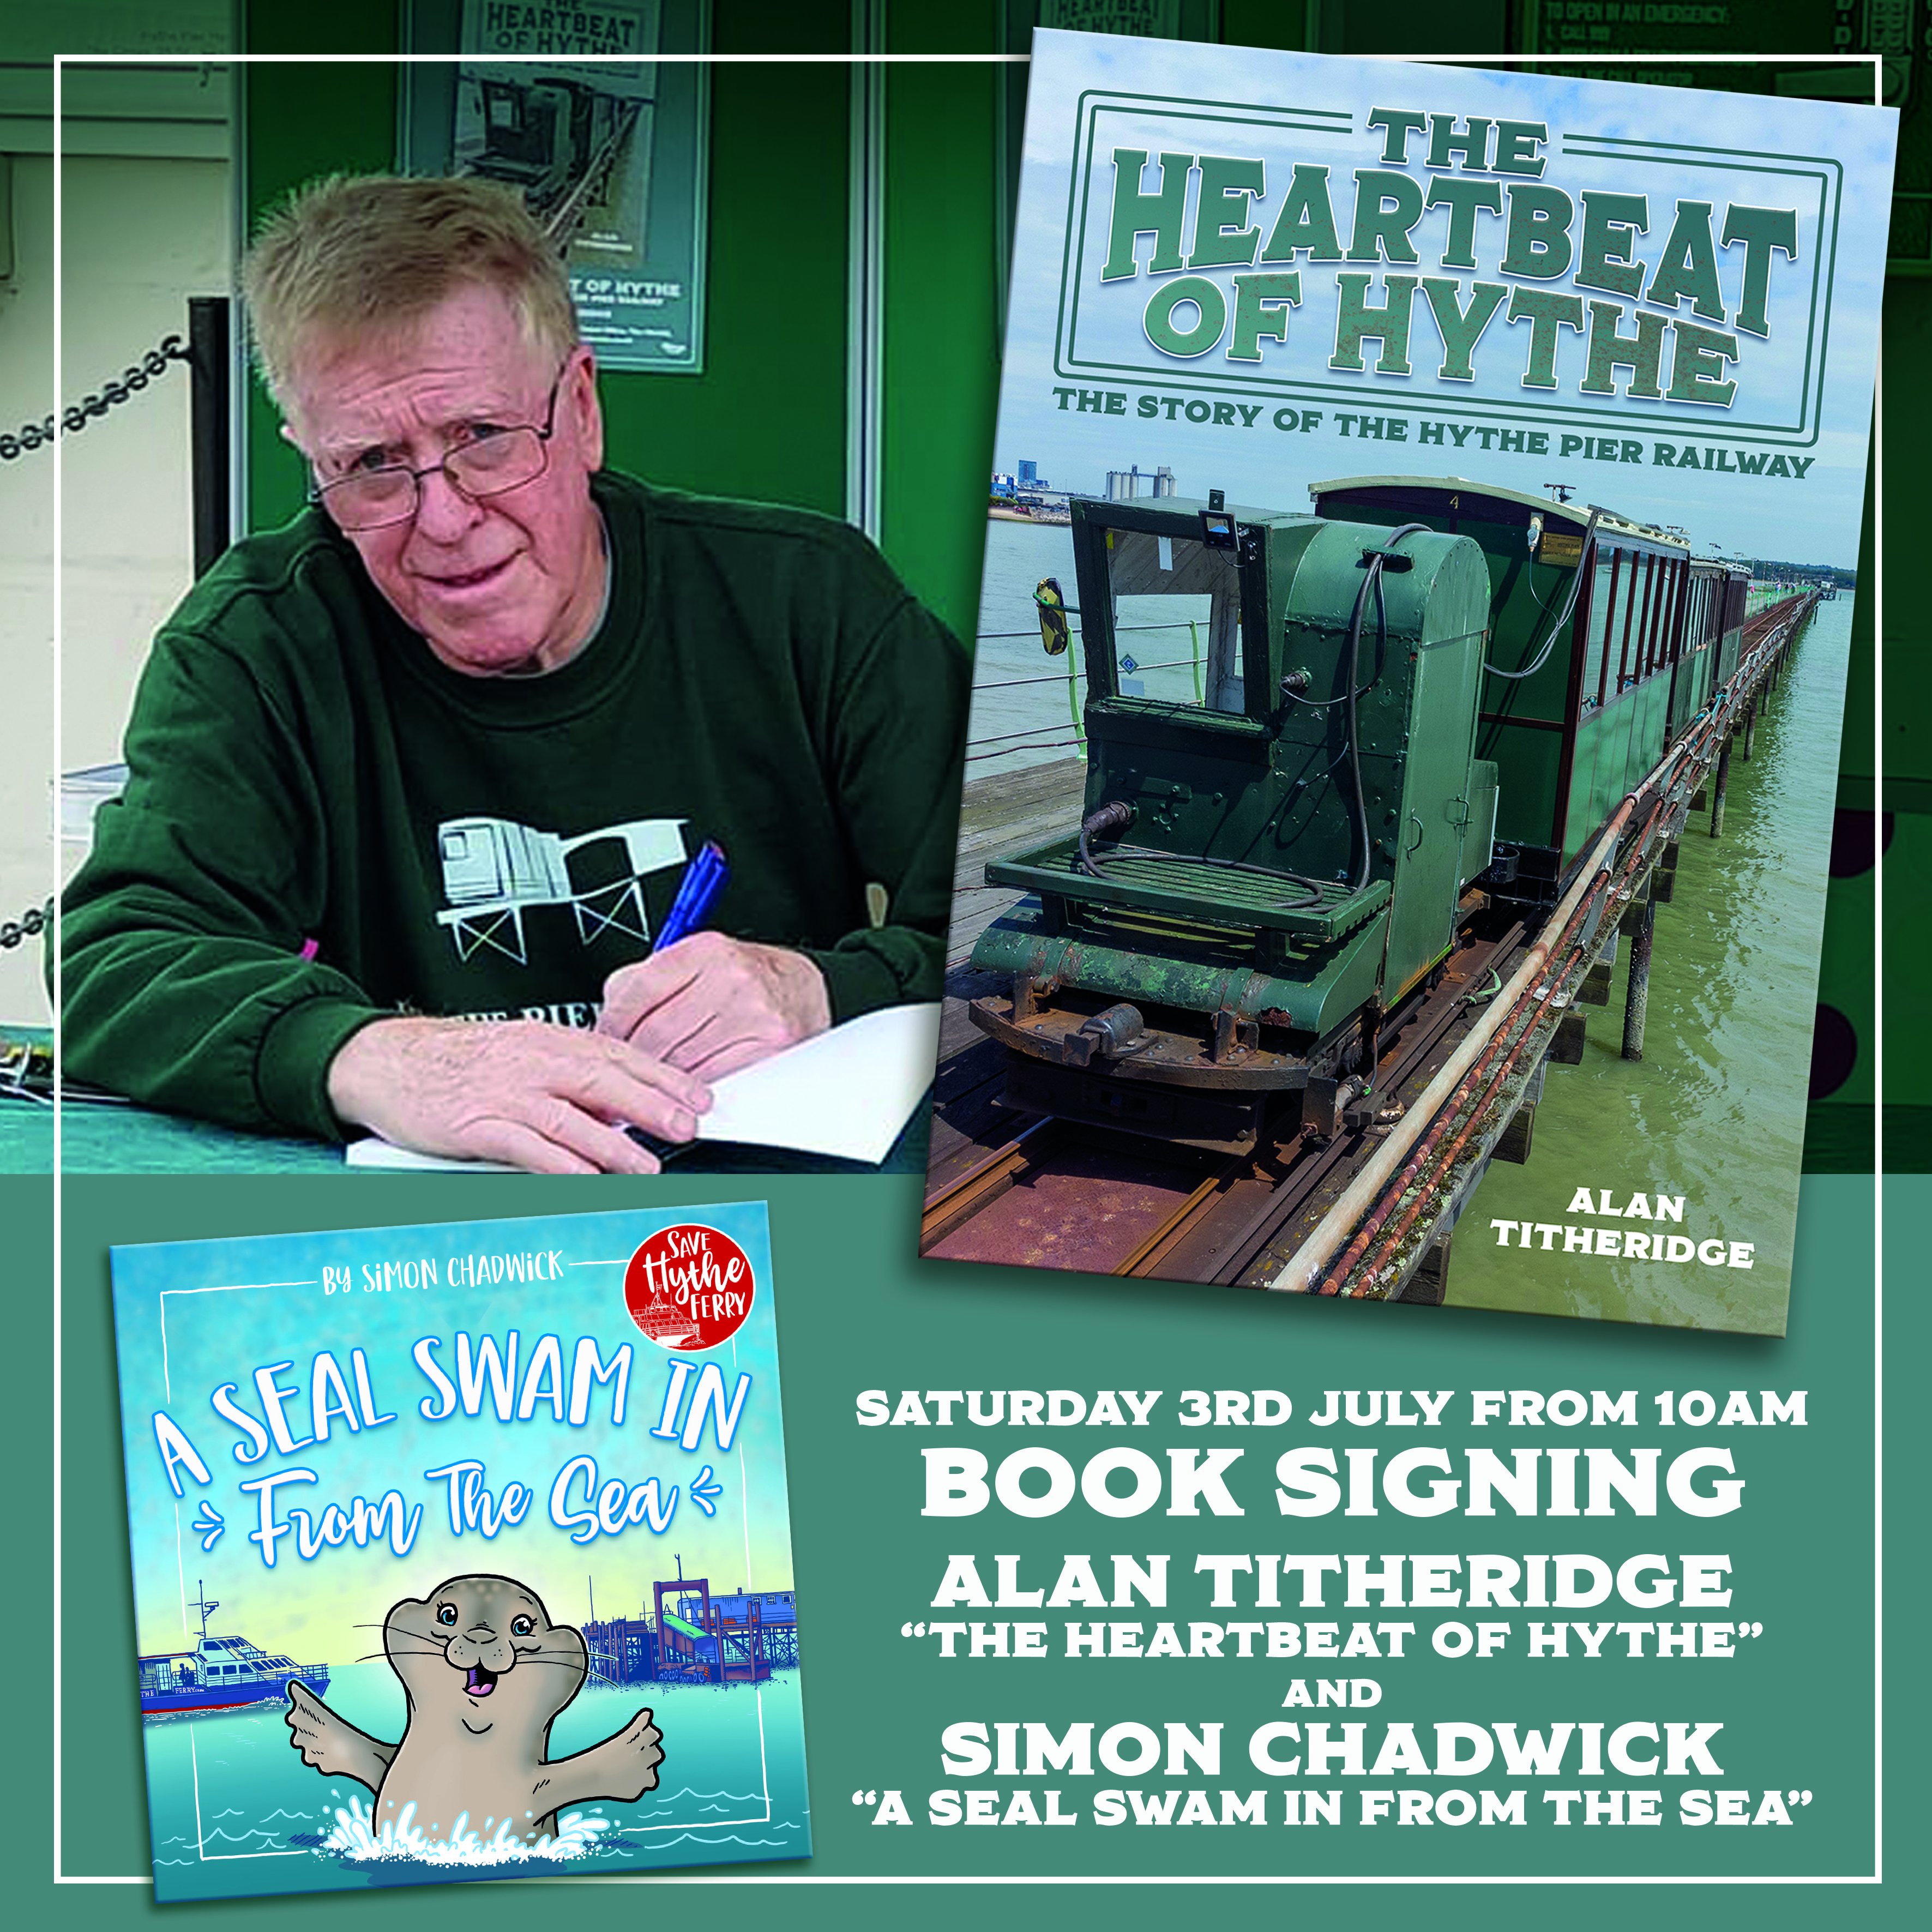 Joint Book Signing event at Hythe Pier